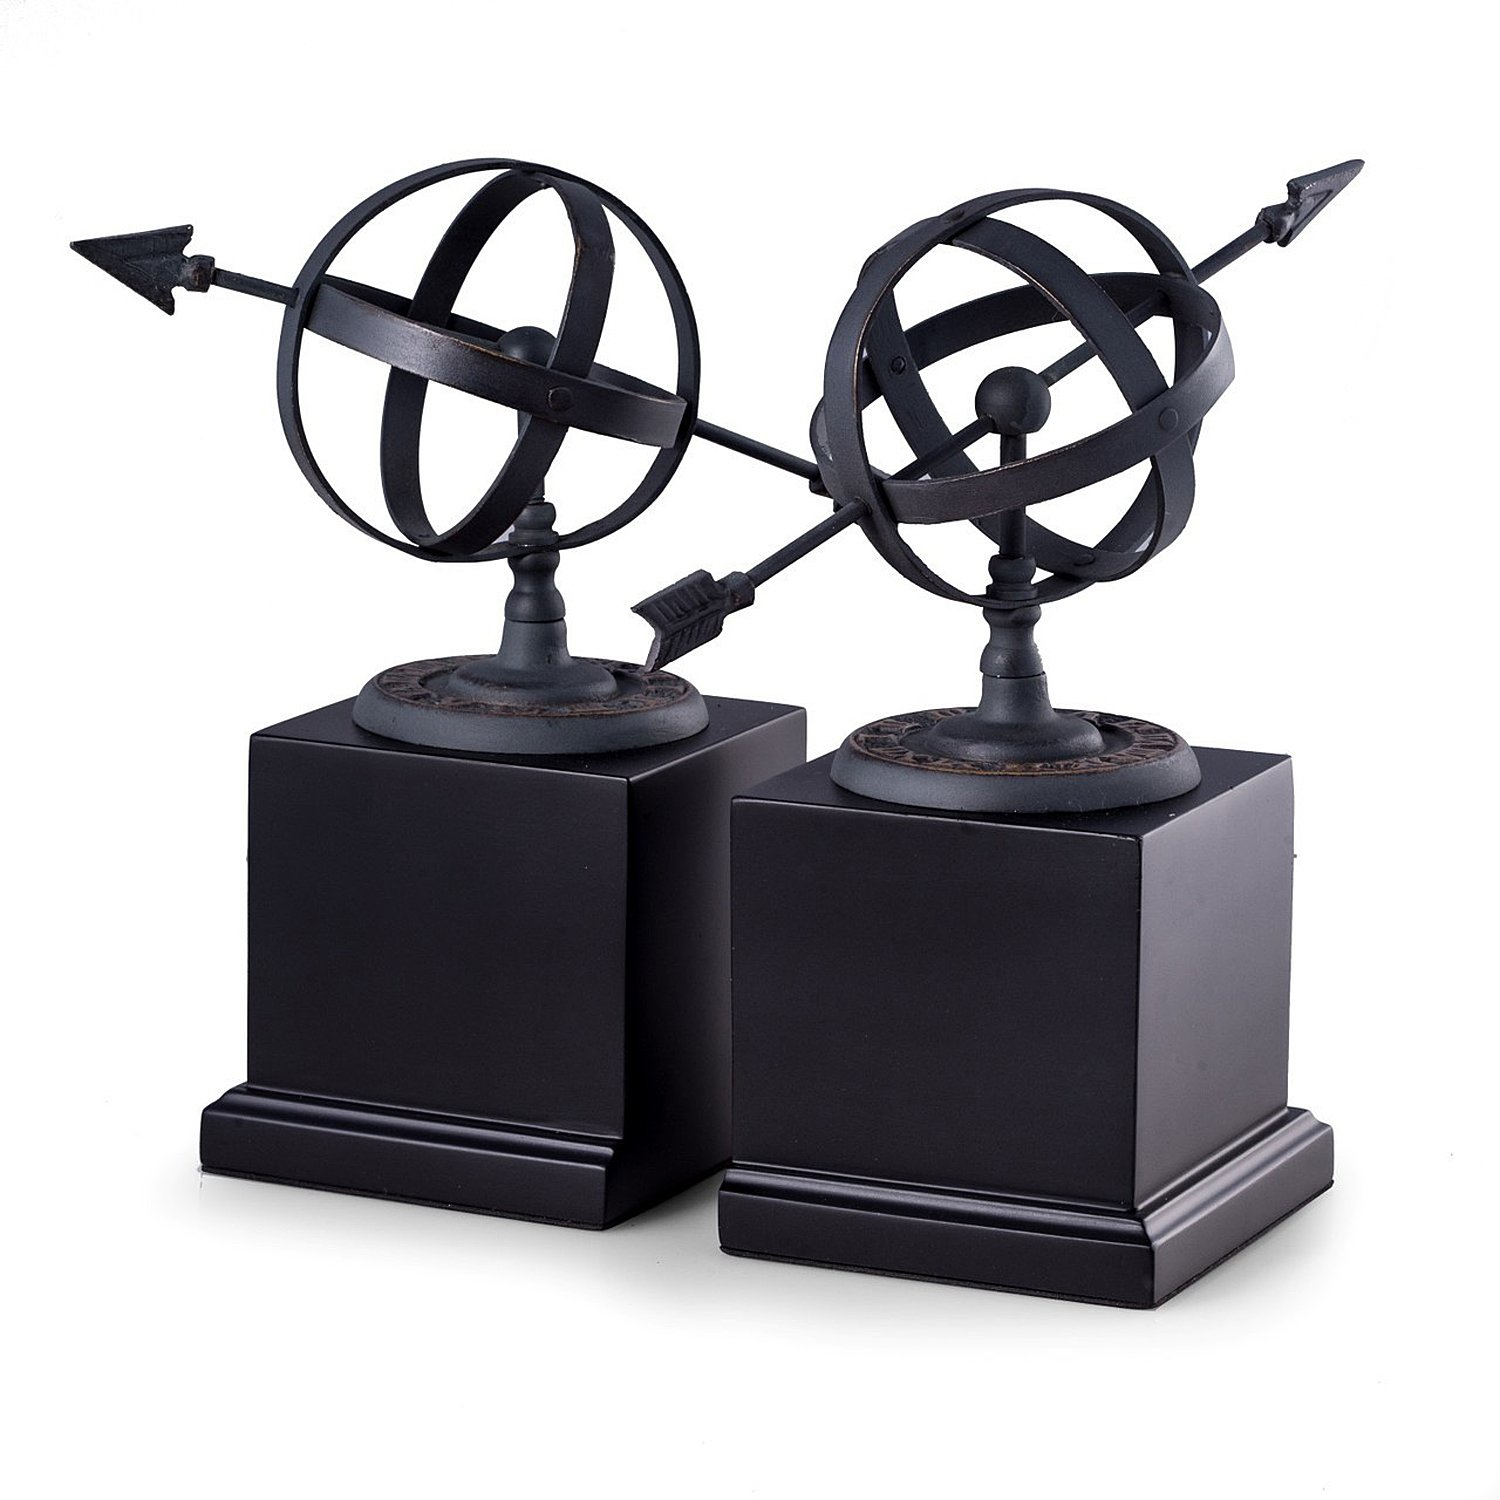 KensingtonRow Home Collection BOOKENDS - ARMILLARY SPHERE BOOKENDS - SUNDIAL BOOKENDS